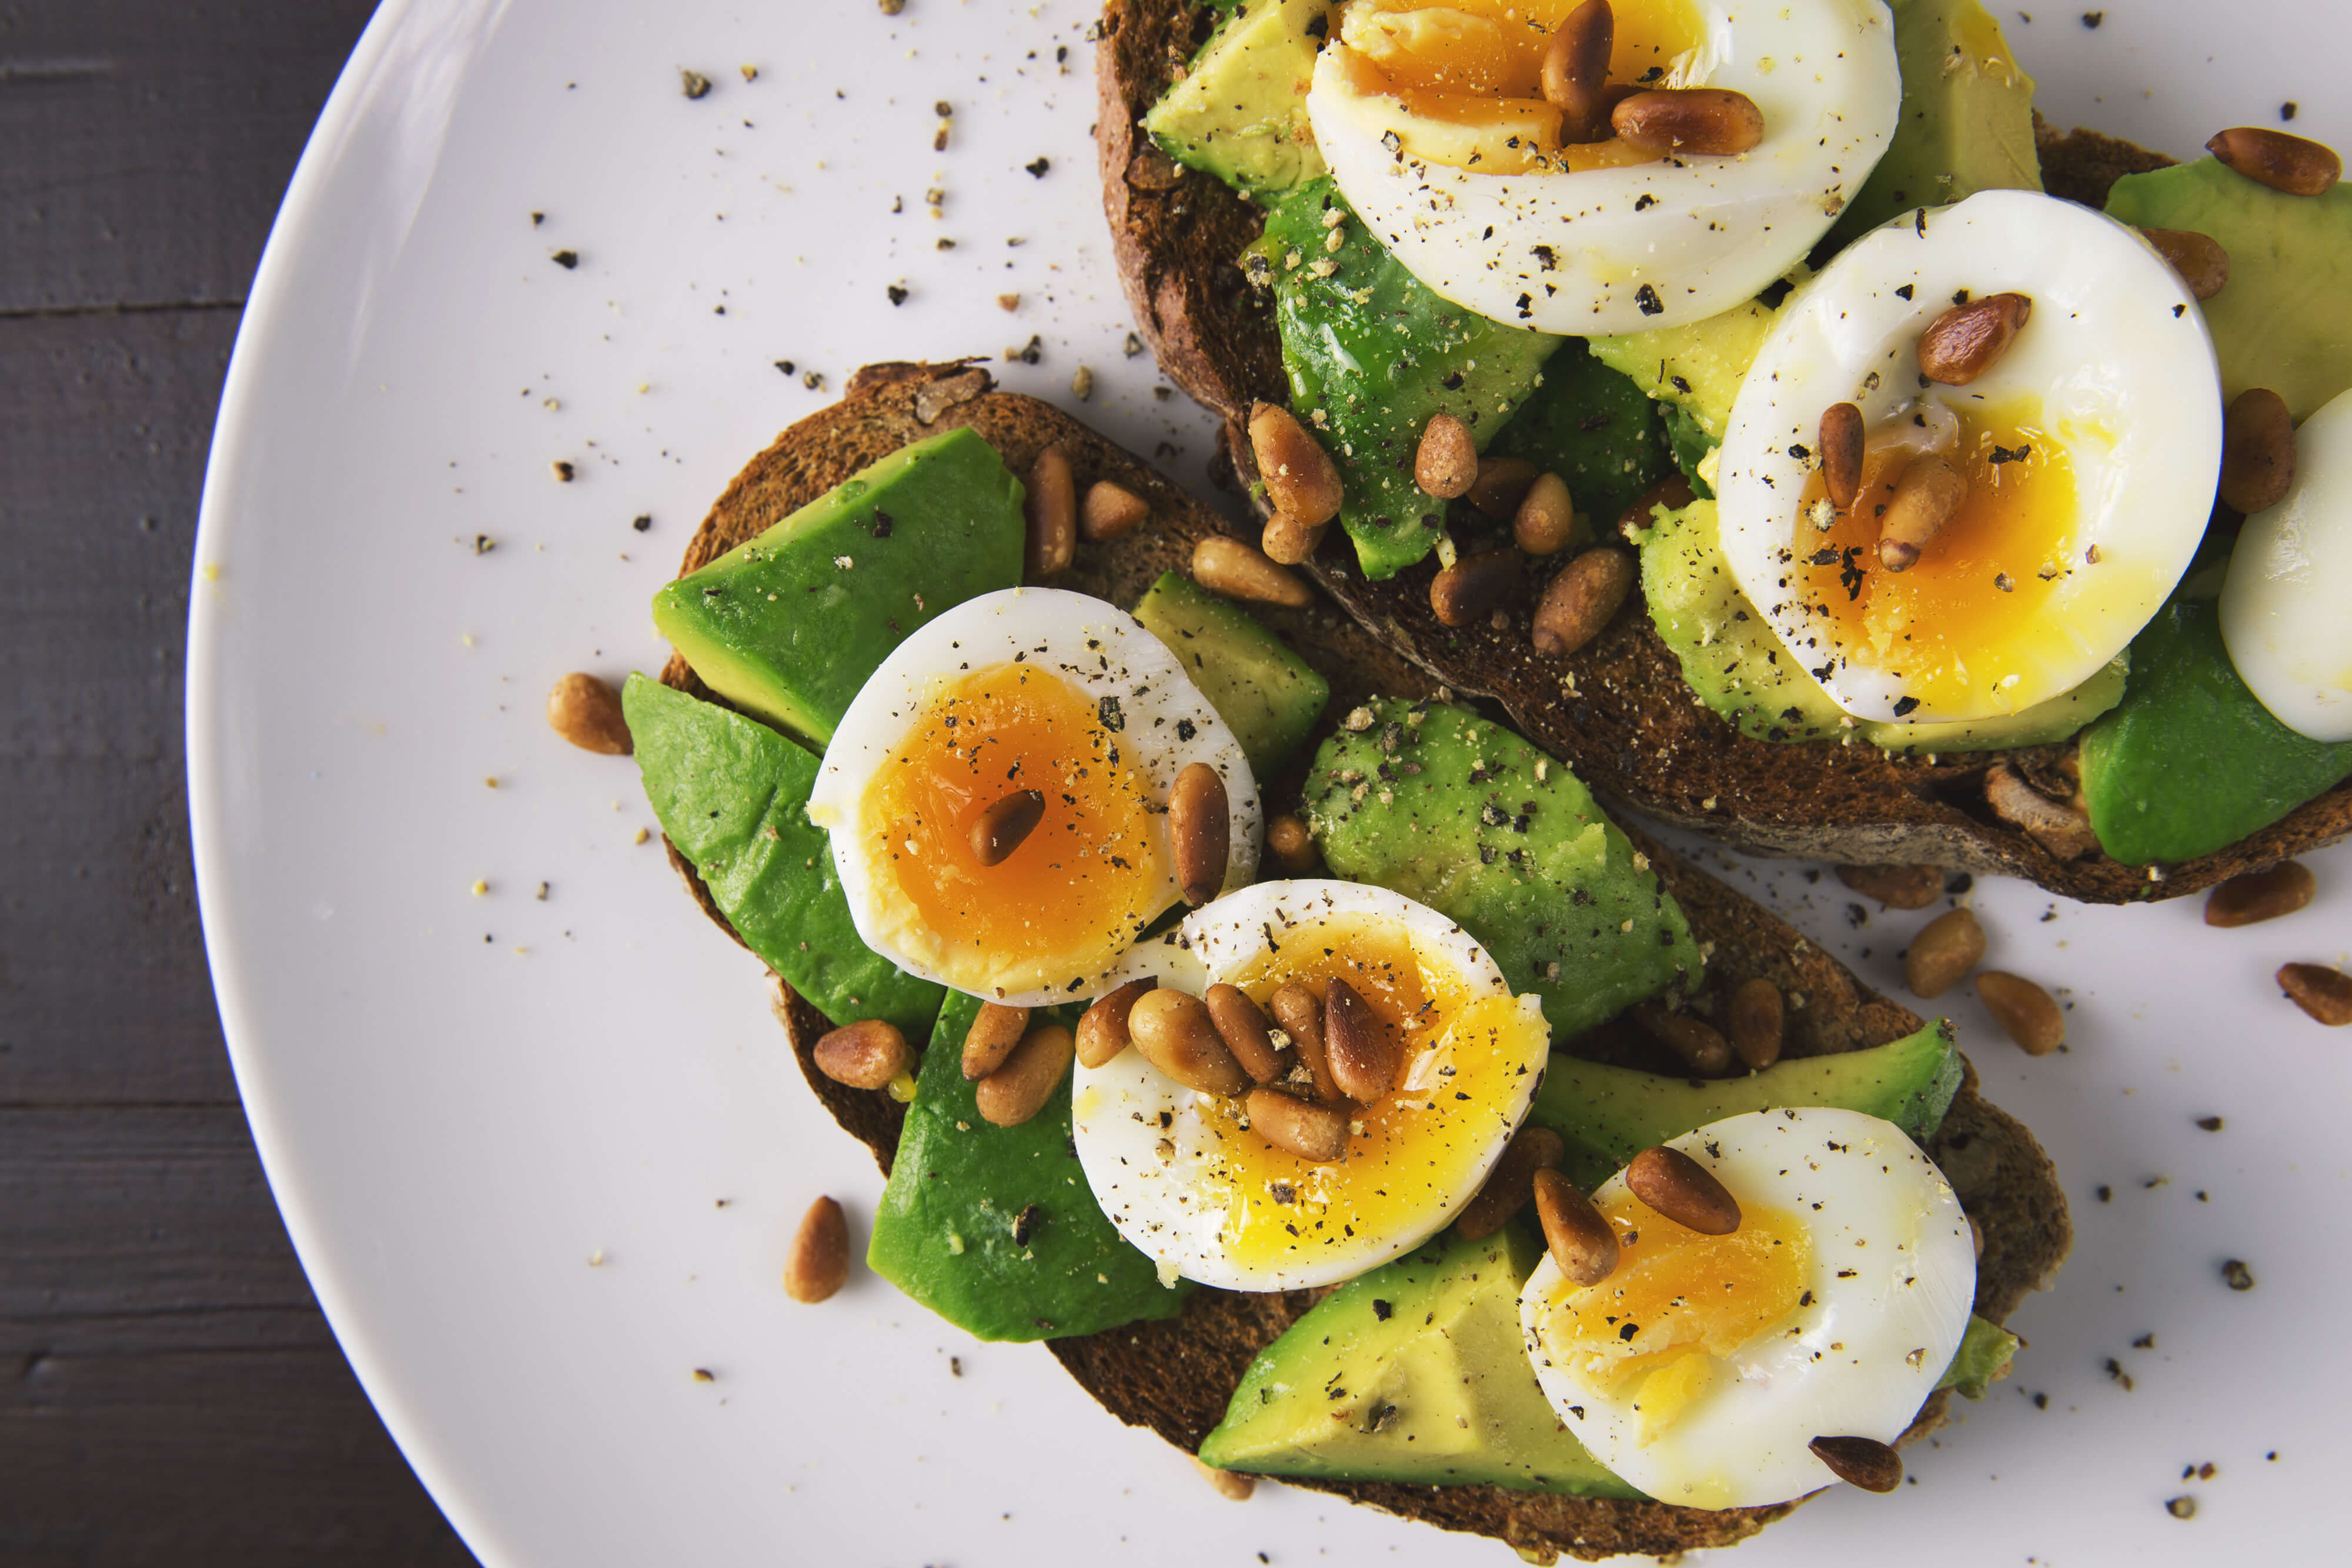 Eggs and avocado on toasted bread with pine nuts image